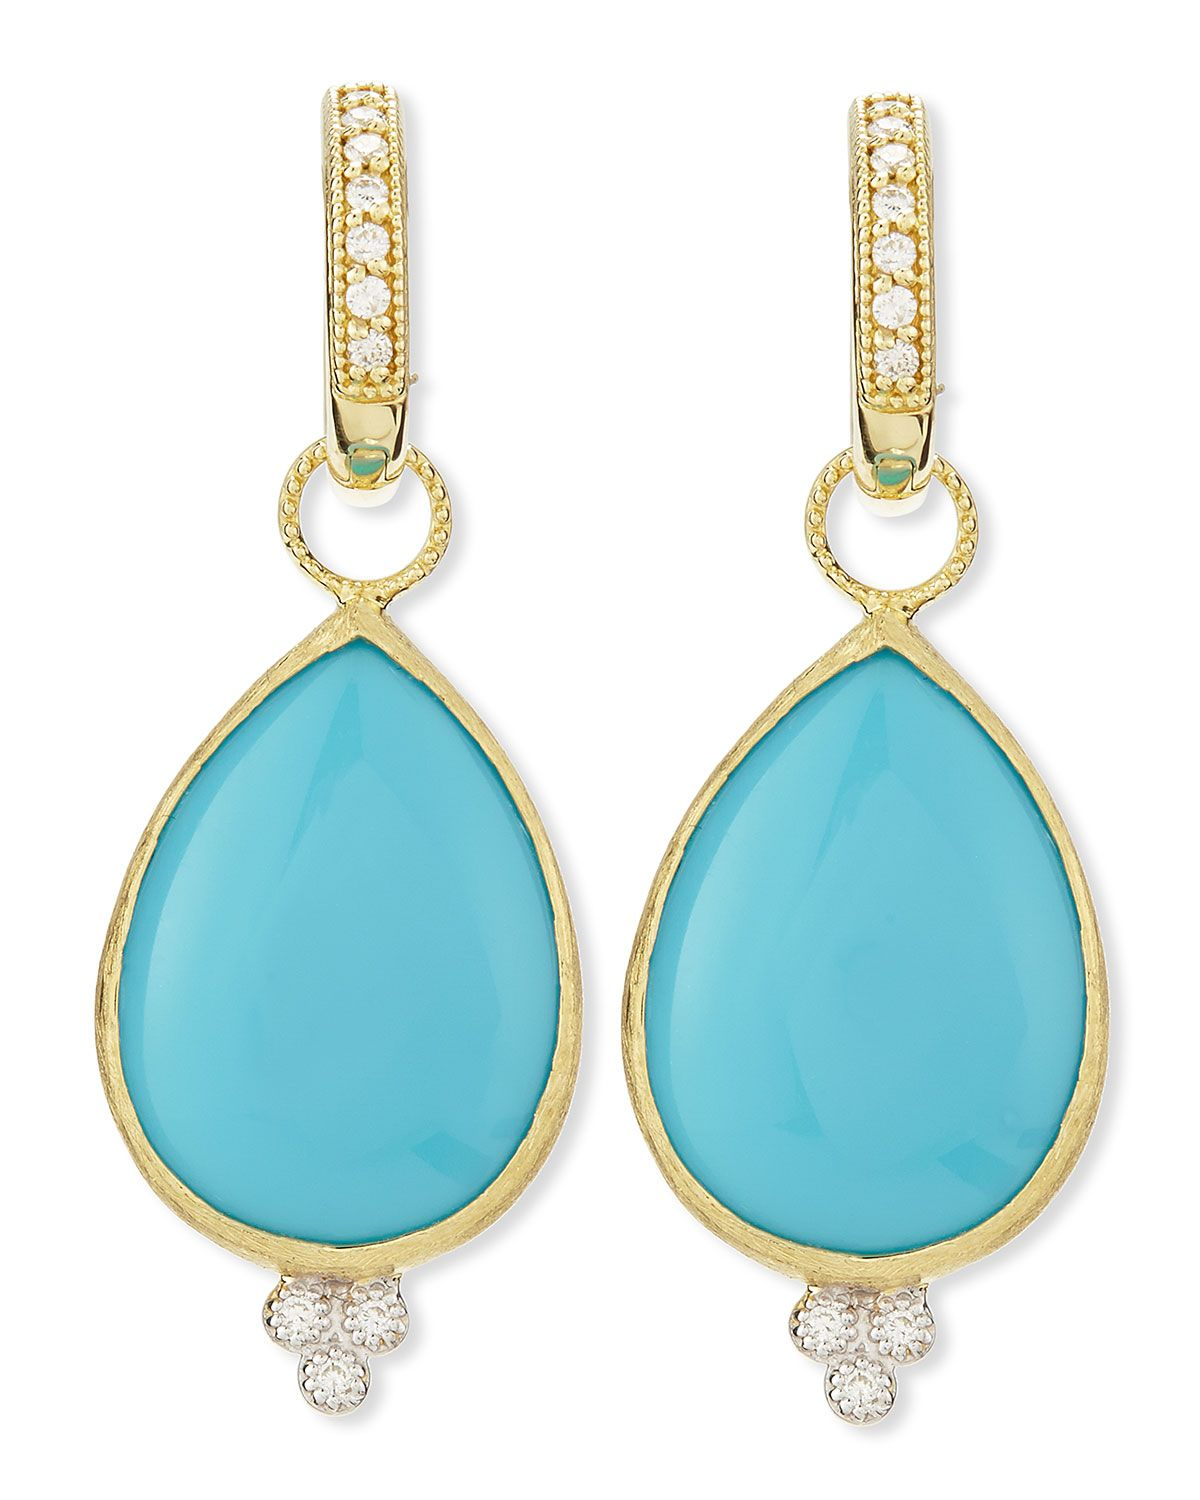 Jude Frances Large Pear Turquoise Earring Charms with Diamonds g1XCAWkwf3